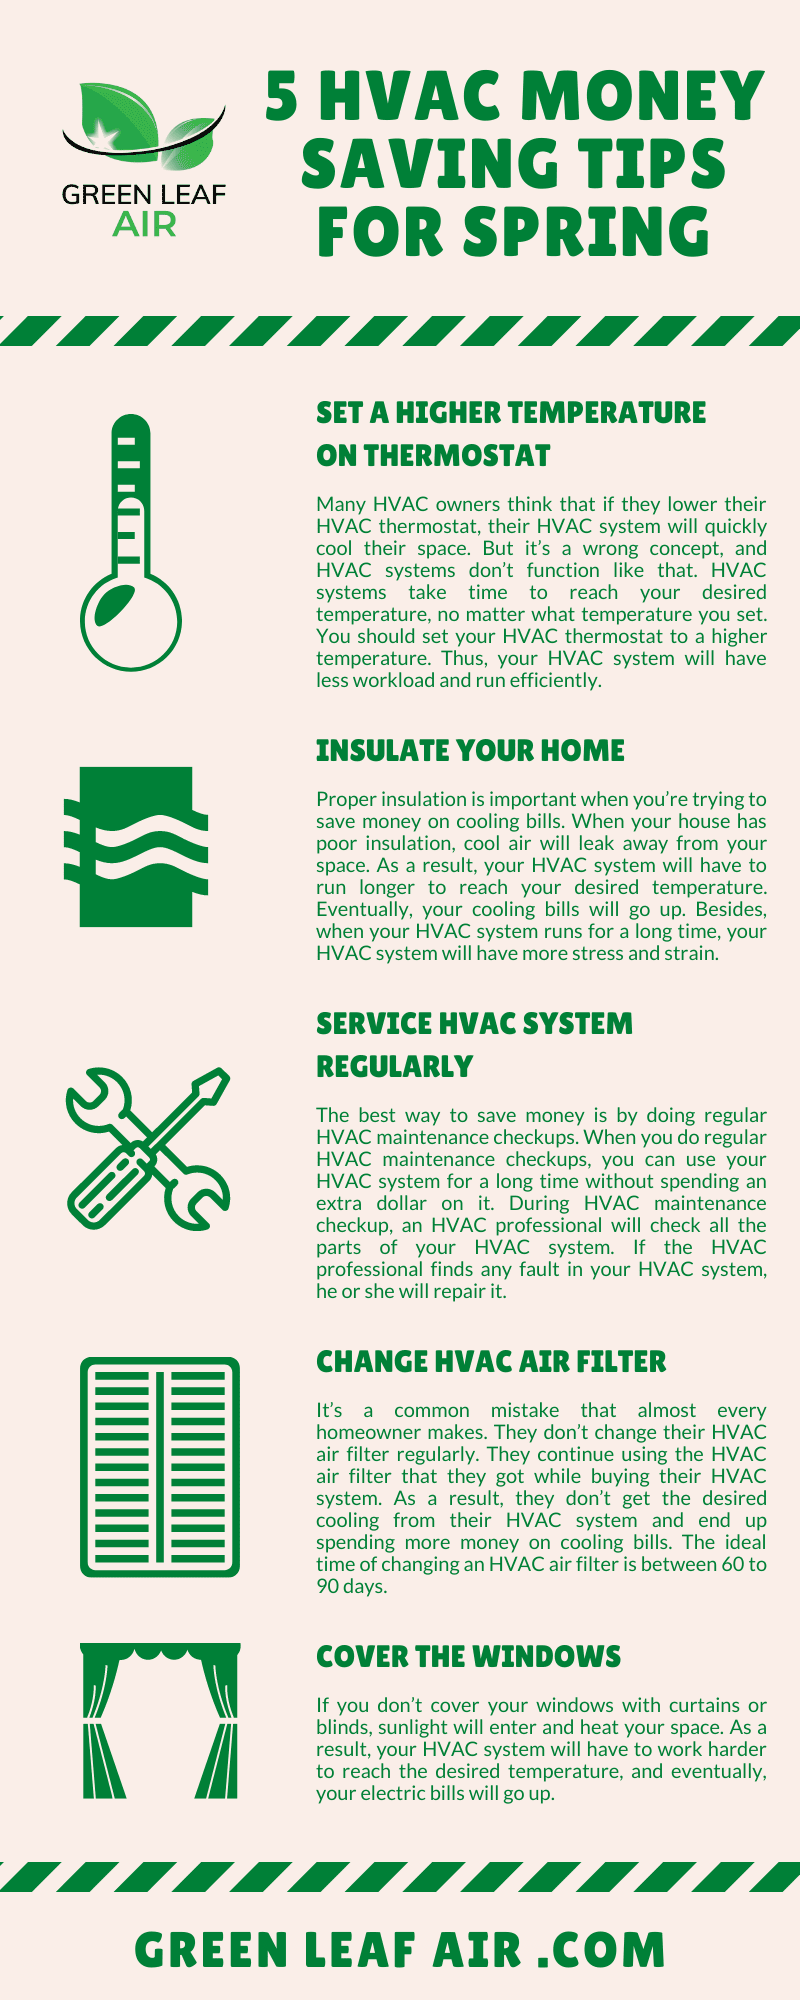 5 Money Saving Tips for HVAC Systems in Spring